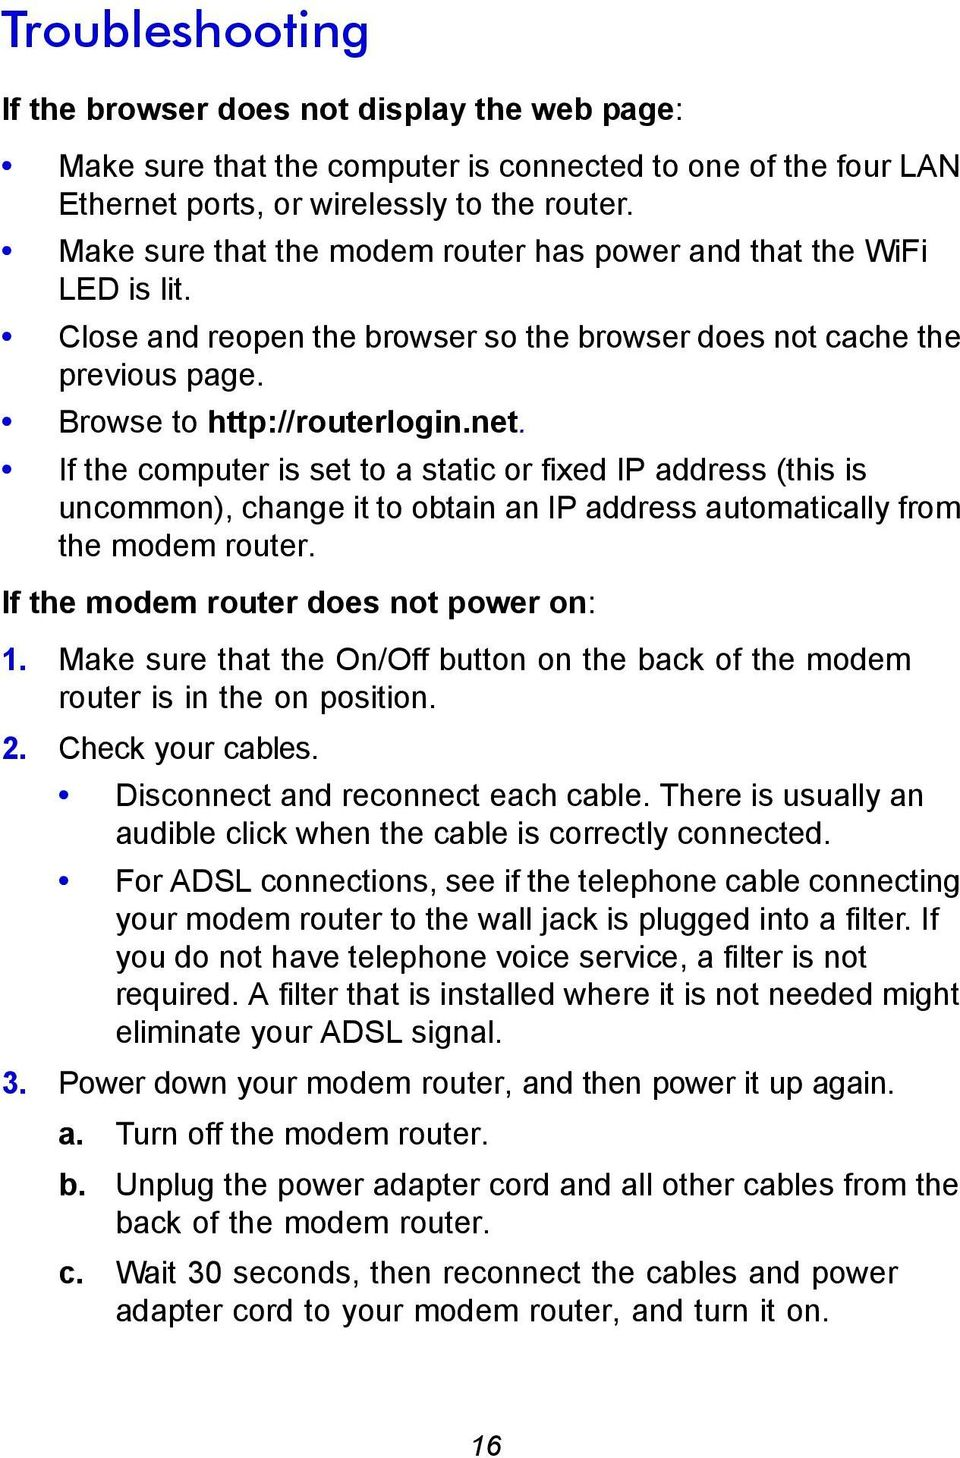 If the computer is set to a static or fixed IP address (this is uncommon), change it to obtain an IP address automatically from the modem router. If the modem router does not power on: 1.